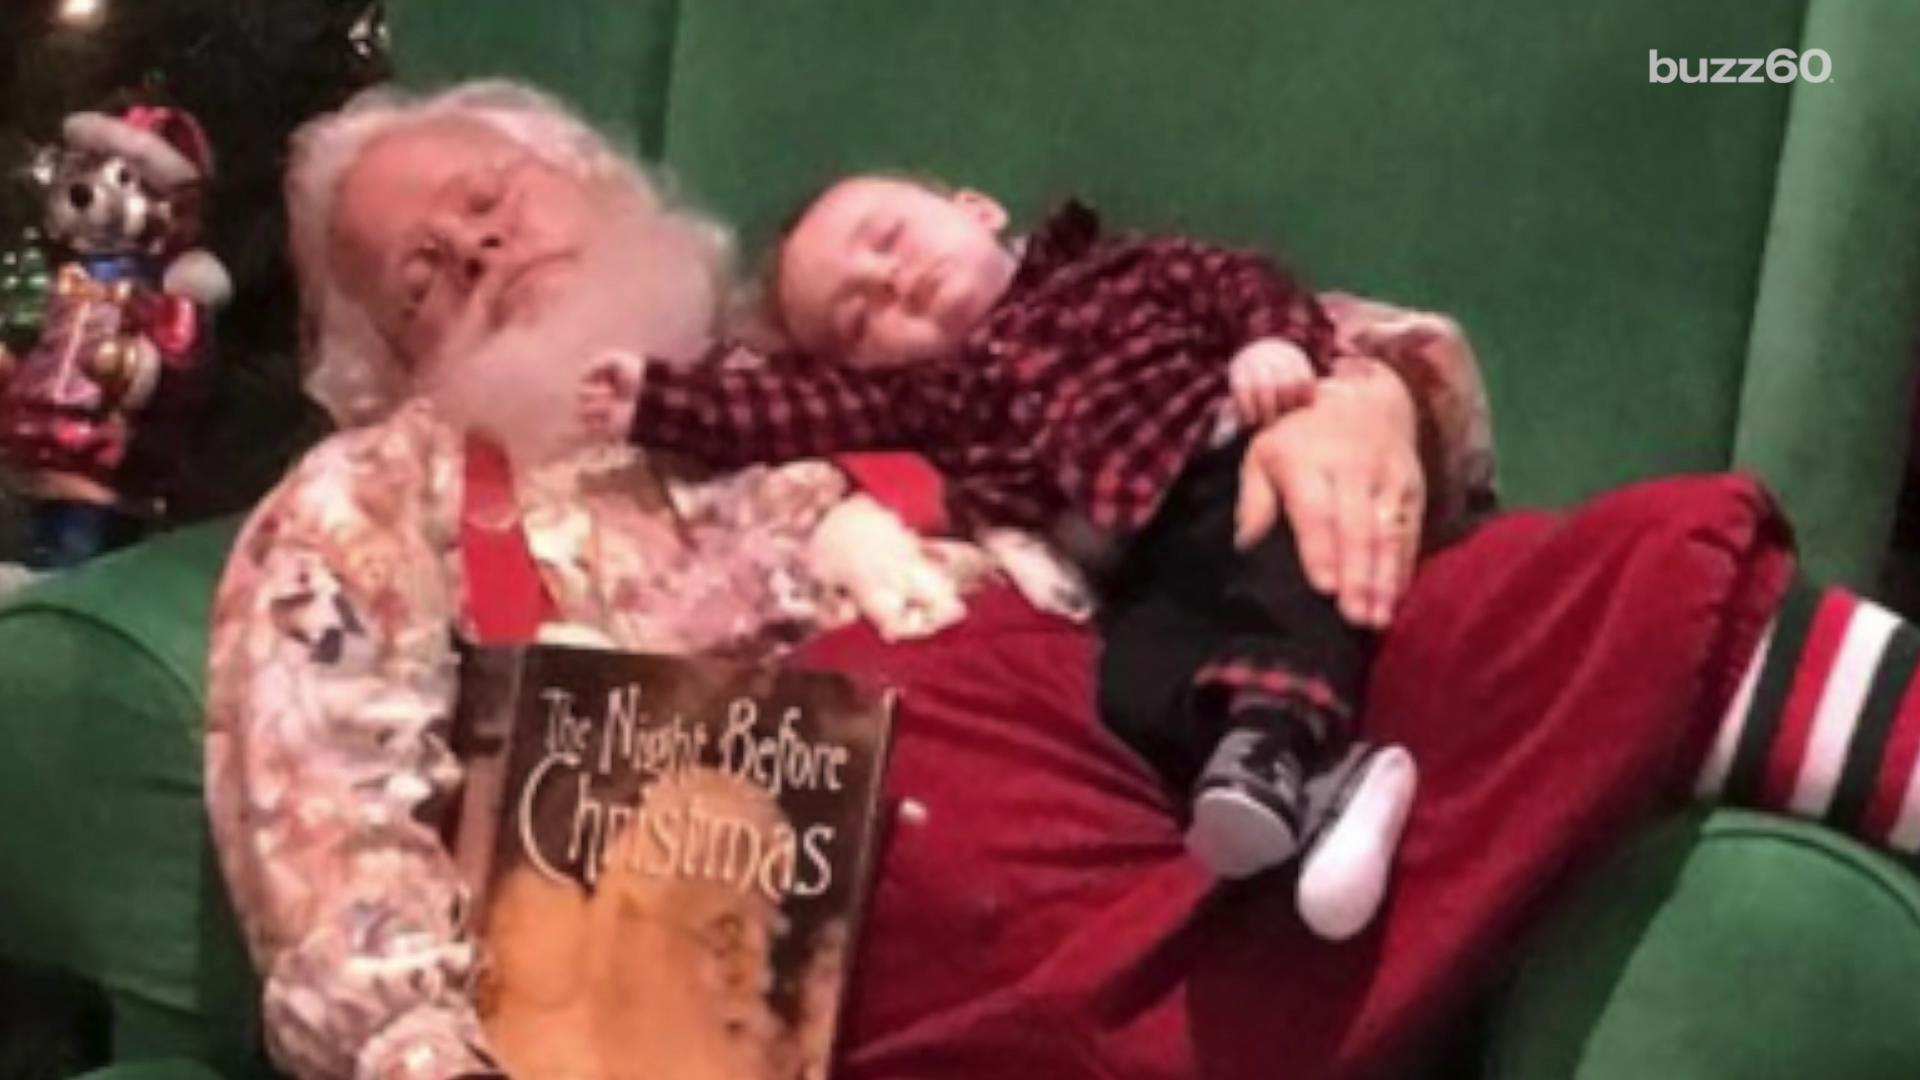 Savvy Santa knows just what to do with a sleeping baby